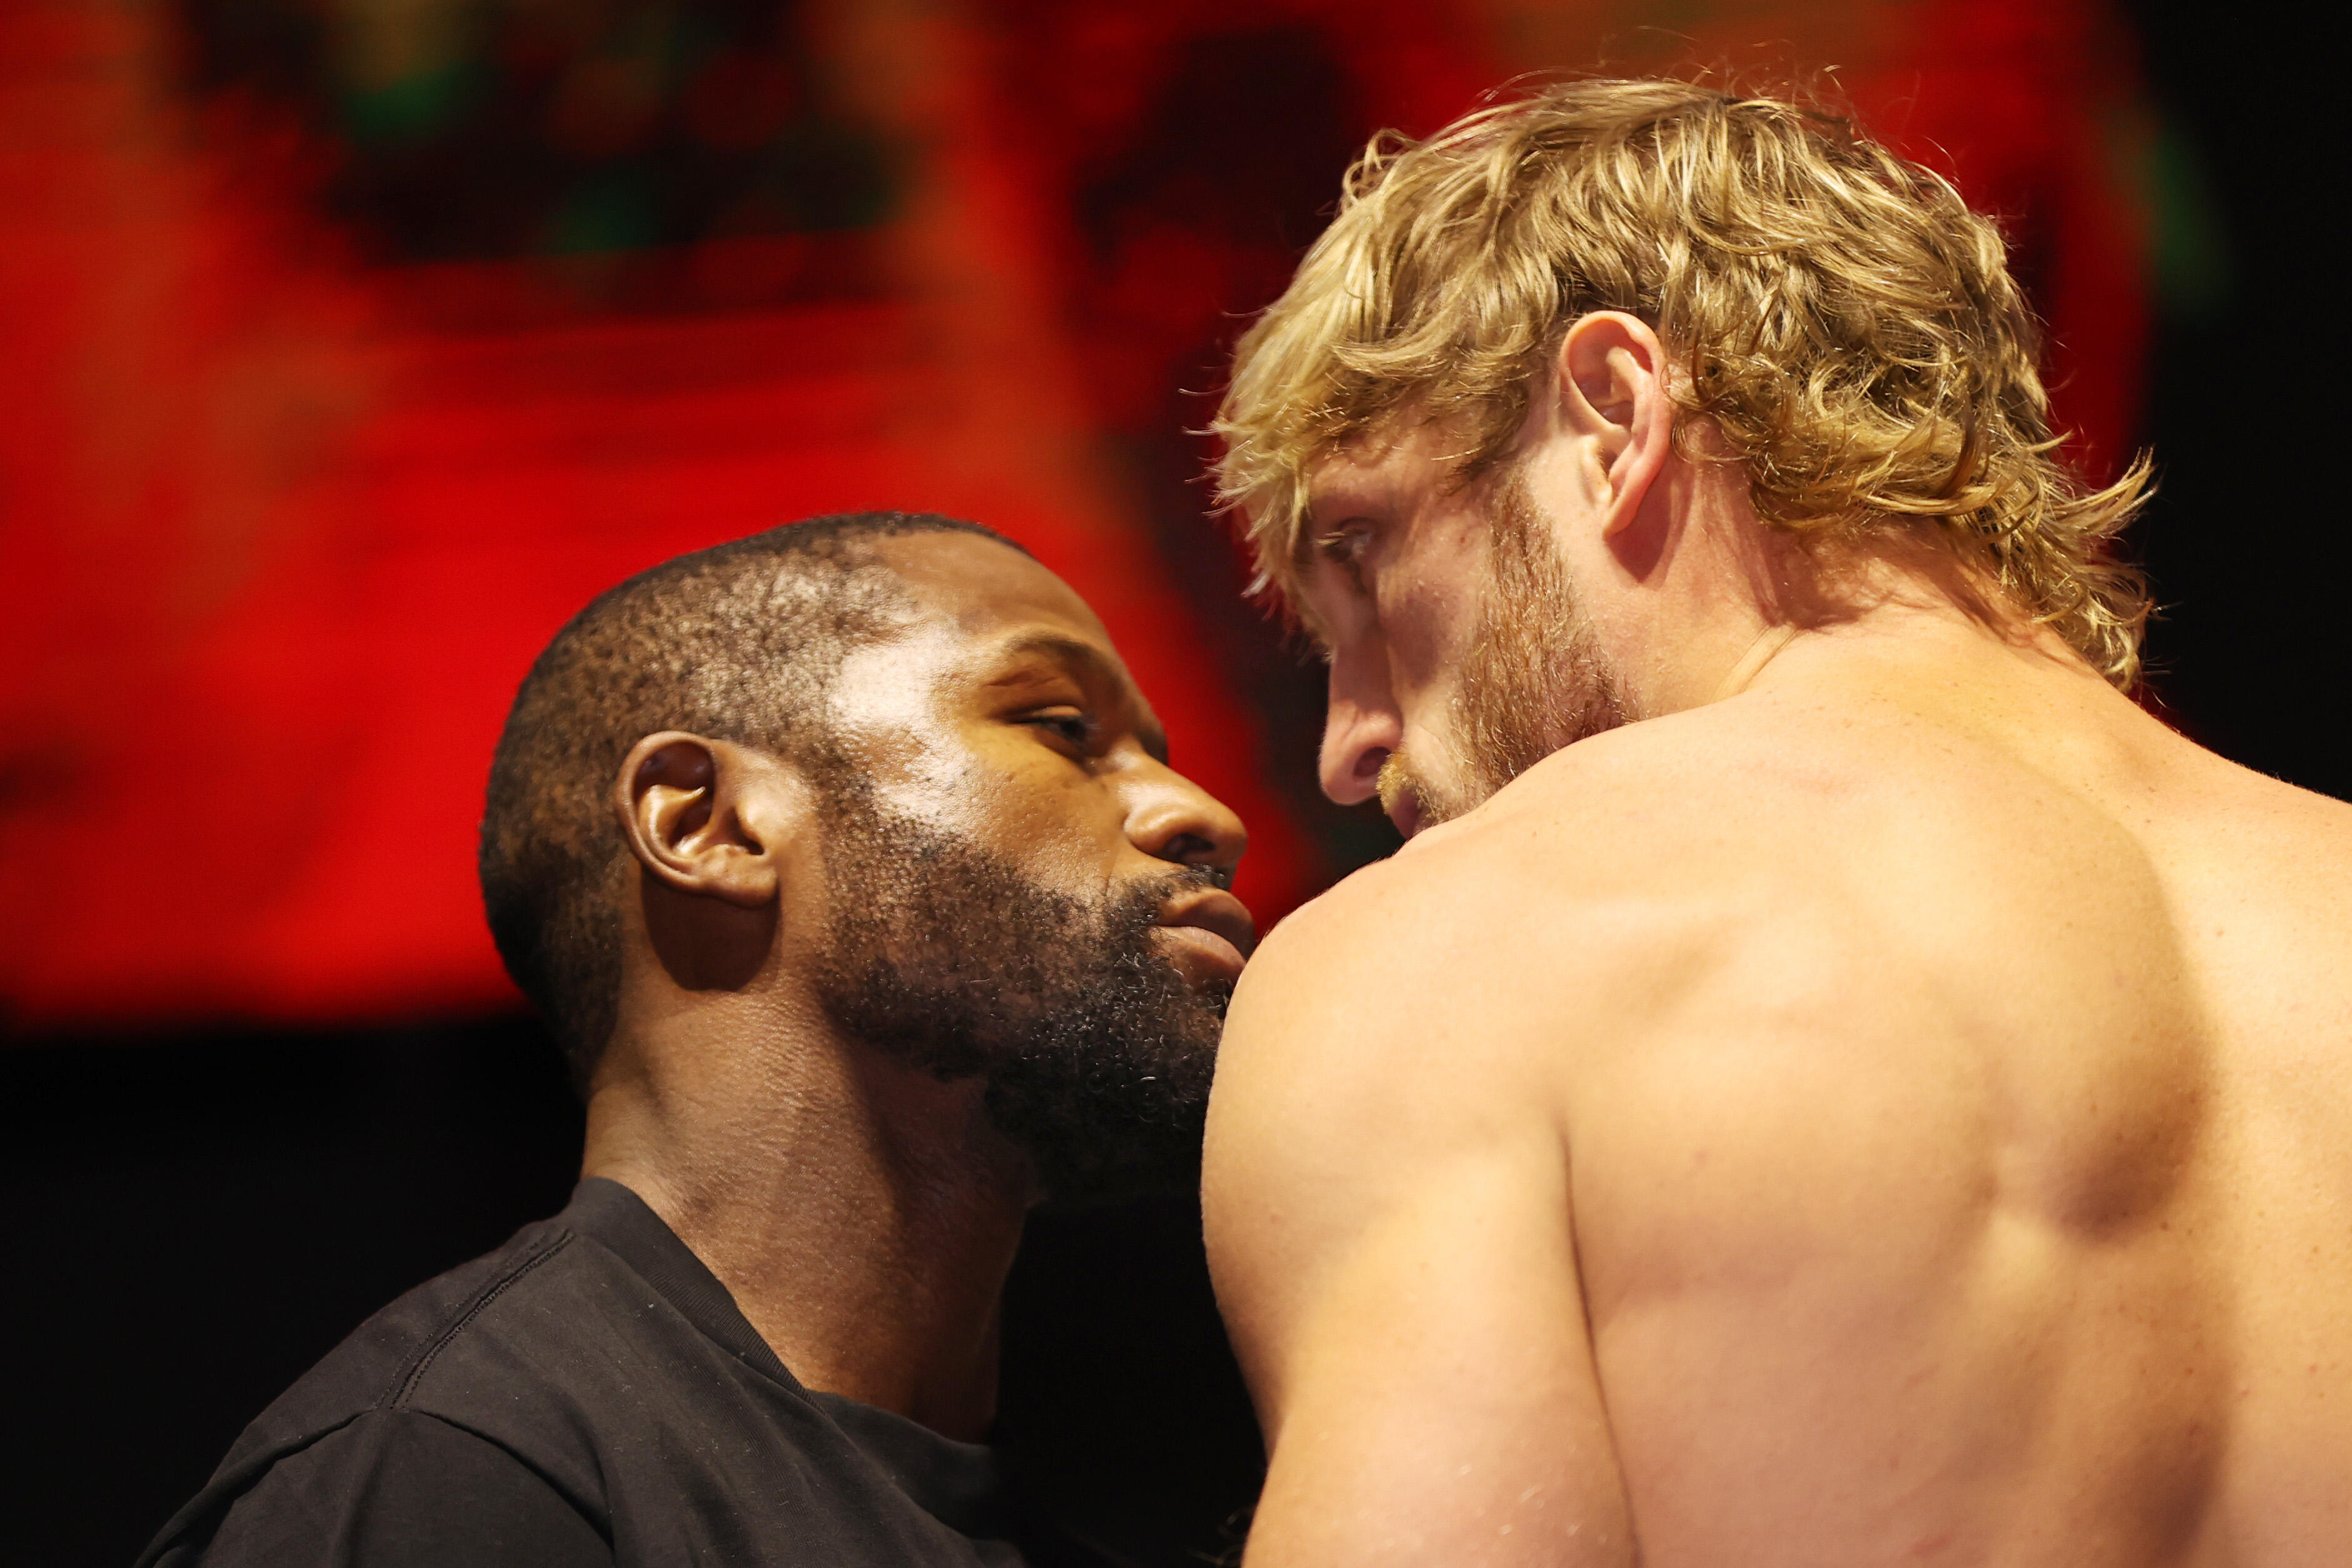 Logan Paul Vs Floyd Mayweather Jr Results A Grim Disappointing Affair With No Winners Cnet